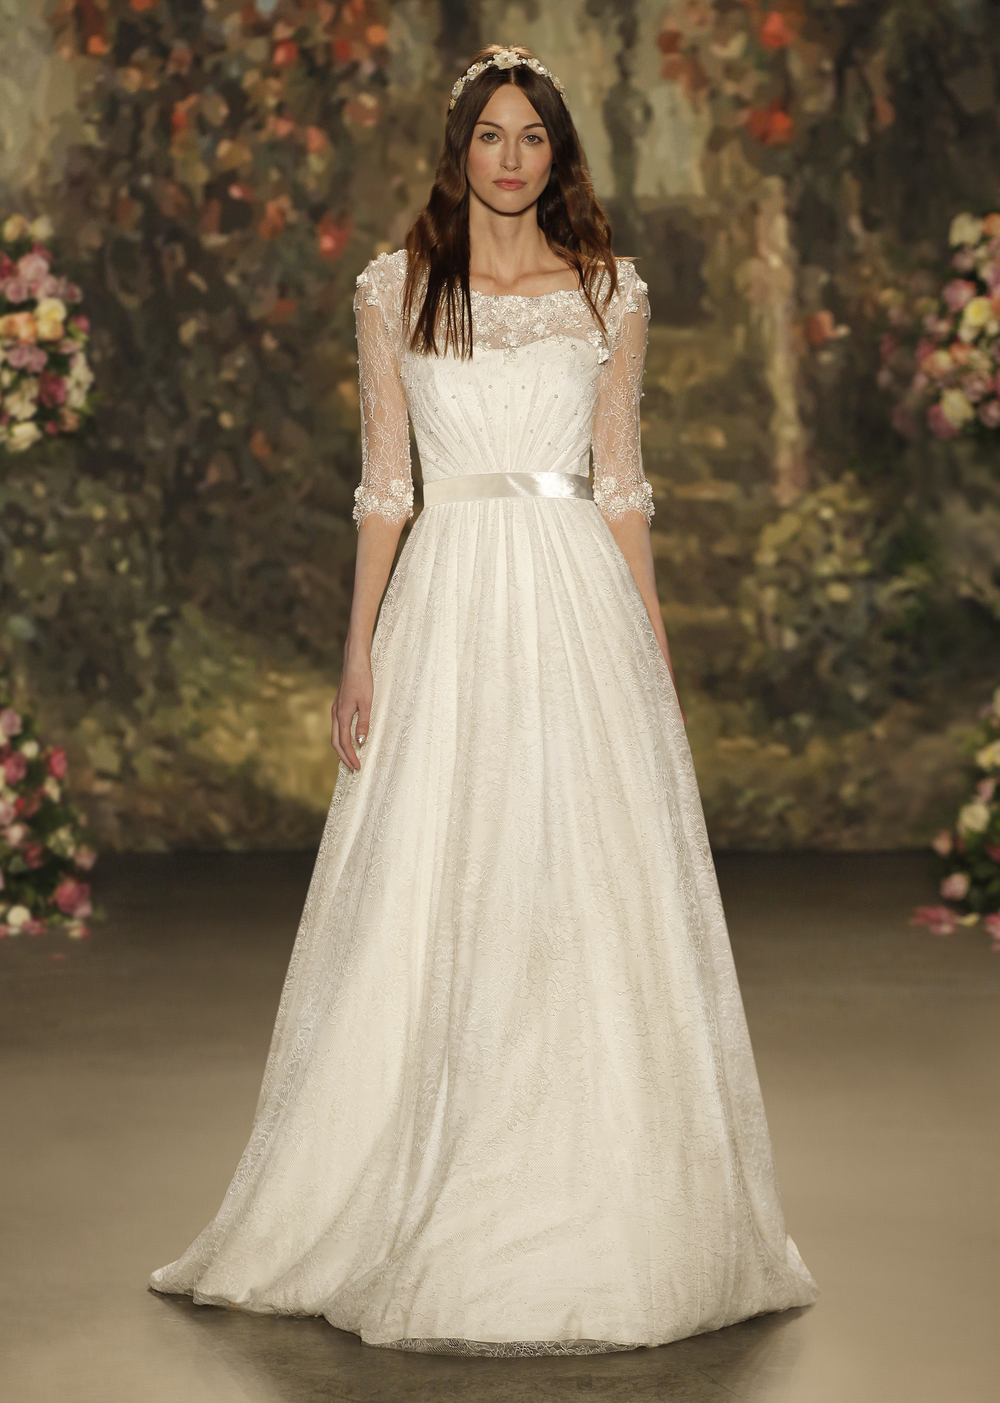 Gertrude by Jenny Packham